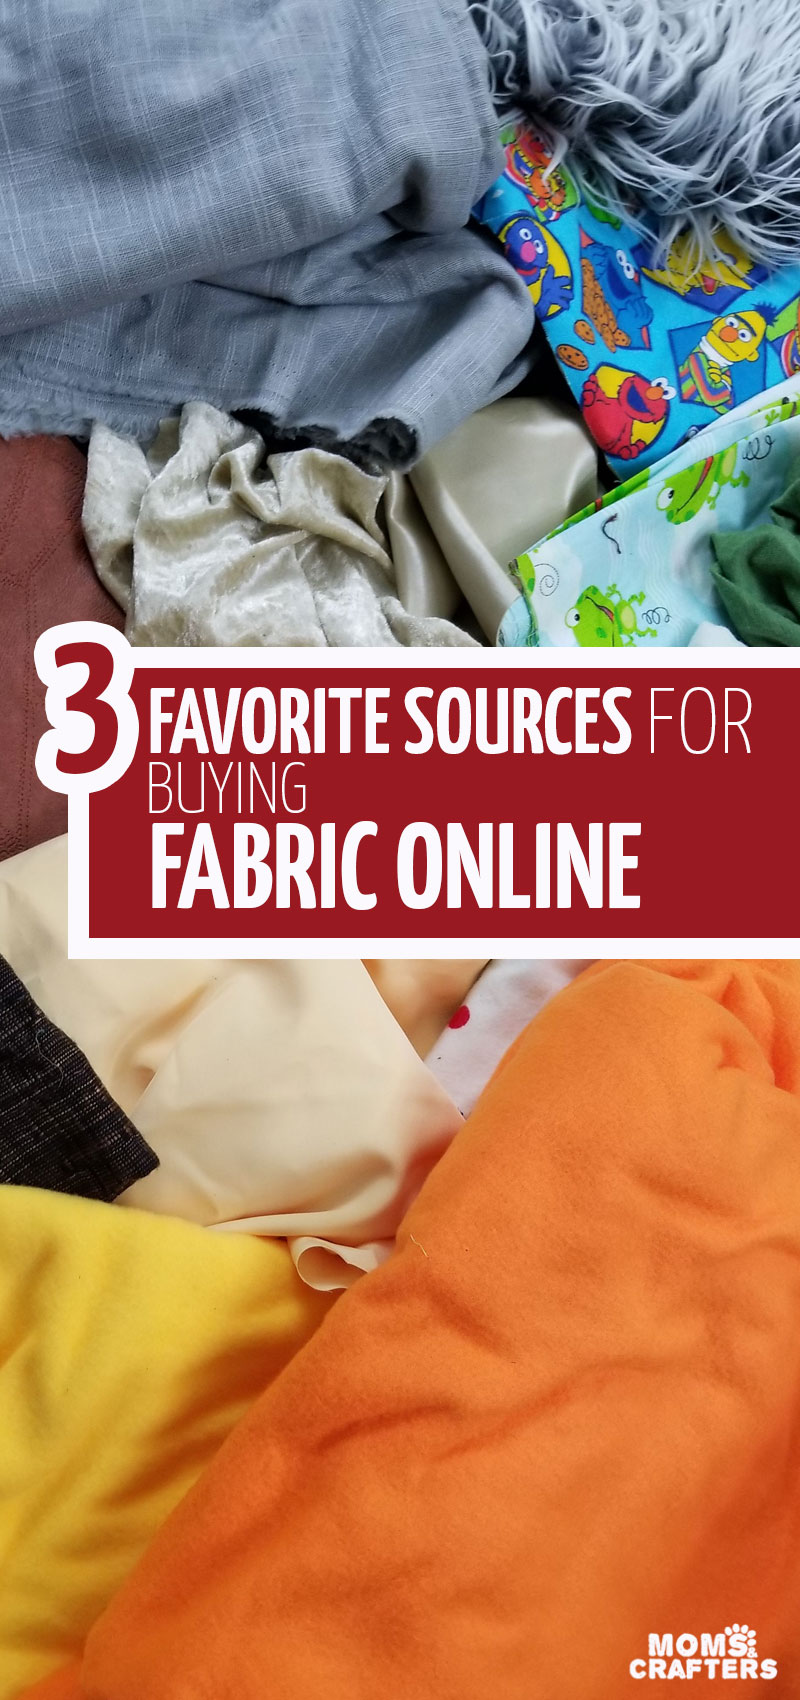 Click for a list of the best place to buy fabrics online for each need! This post includes sewing tips for beginners to help you source quality fabrics online. #sewing #diy #crafts